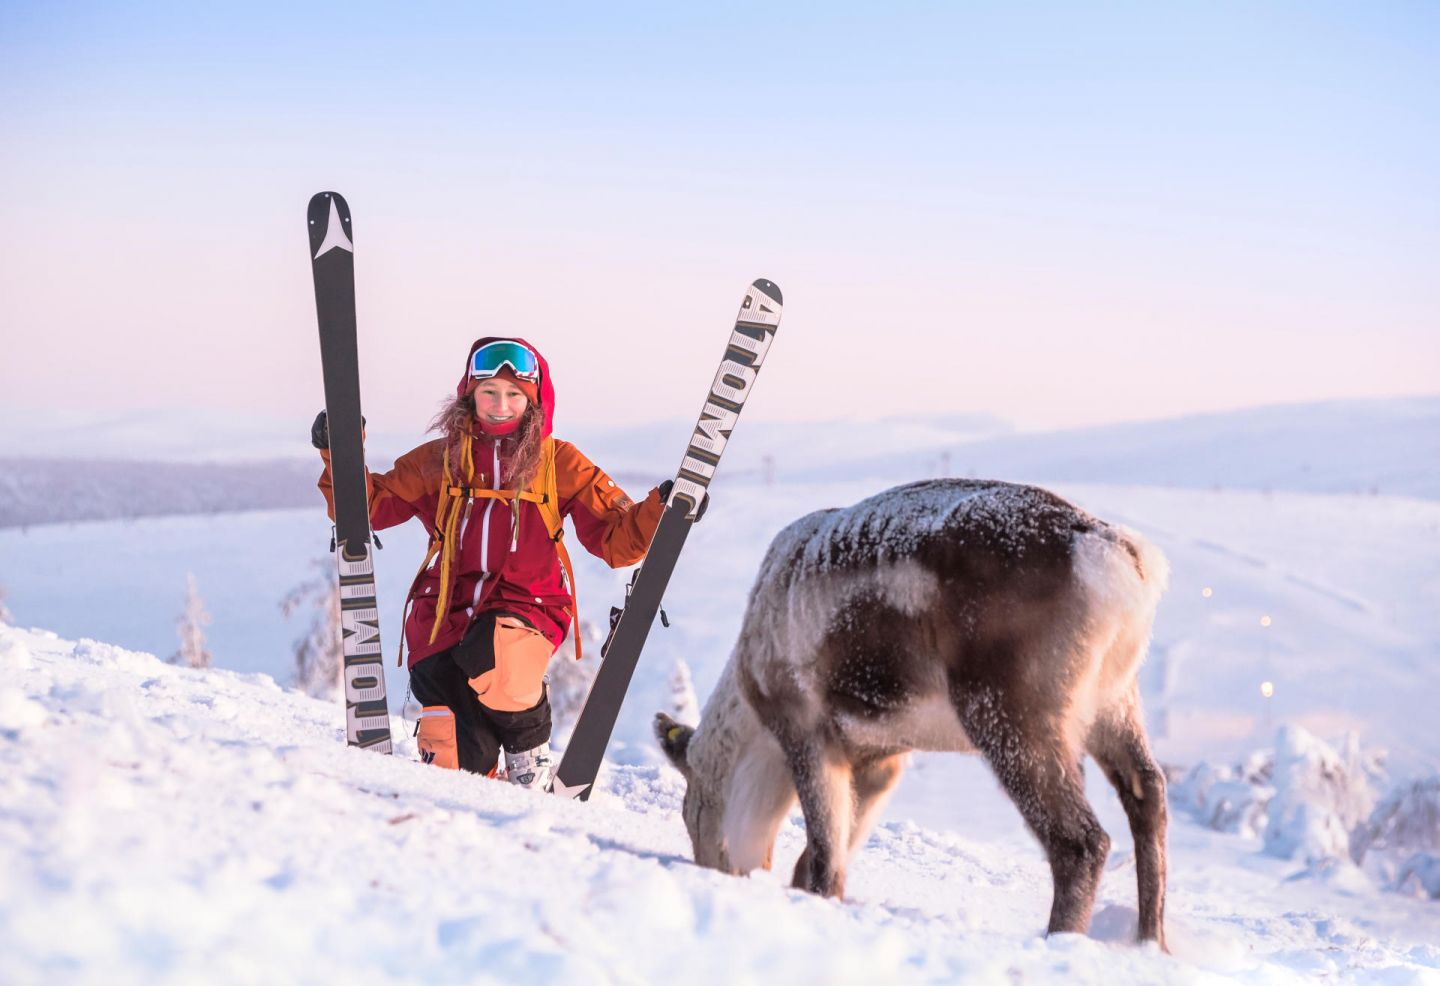 Skier surprised by reindeer friend on Lapland fell